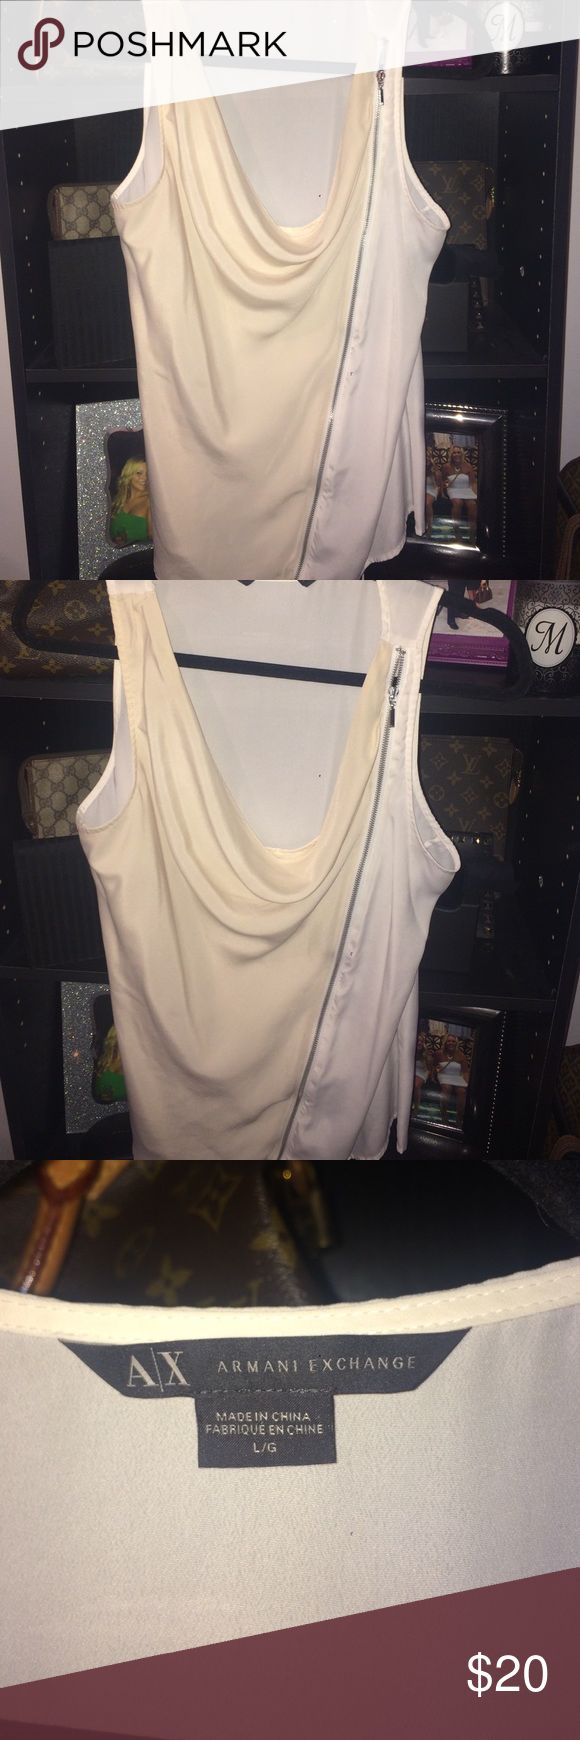 Armani exchange top Armani exchange top with zipper down the front. White and cream colored Armani Exchange Tops